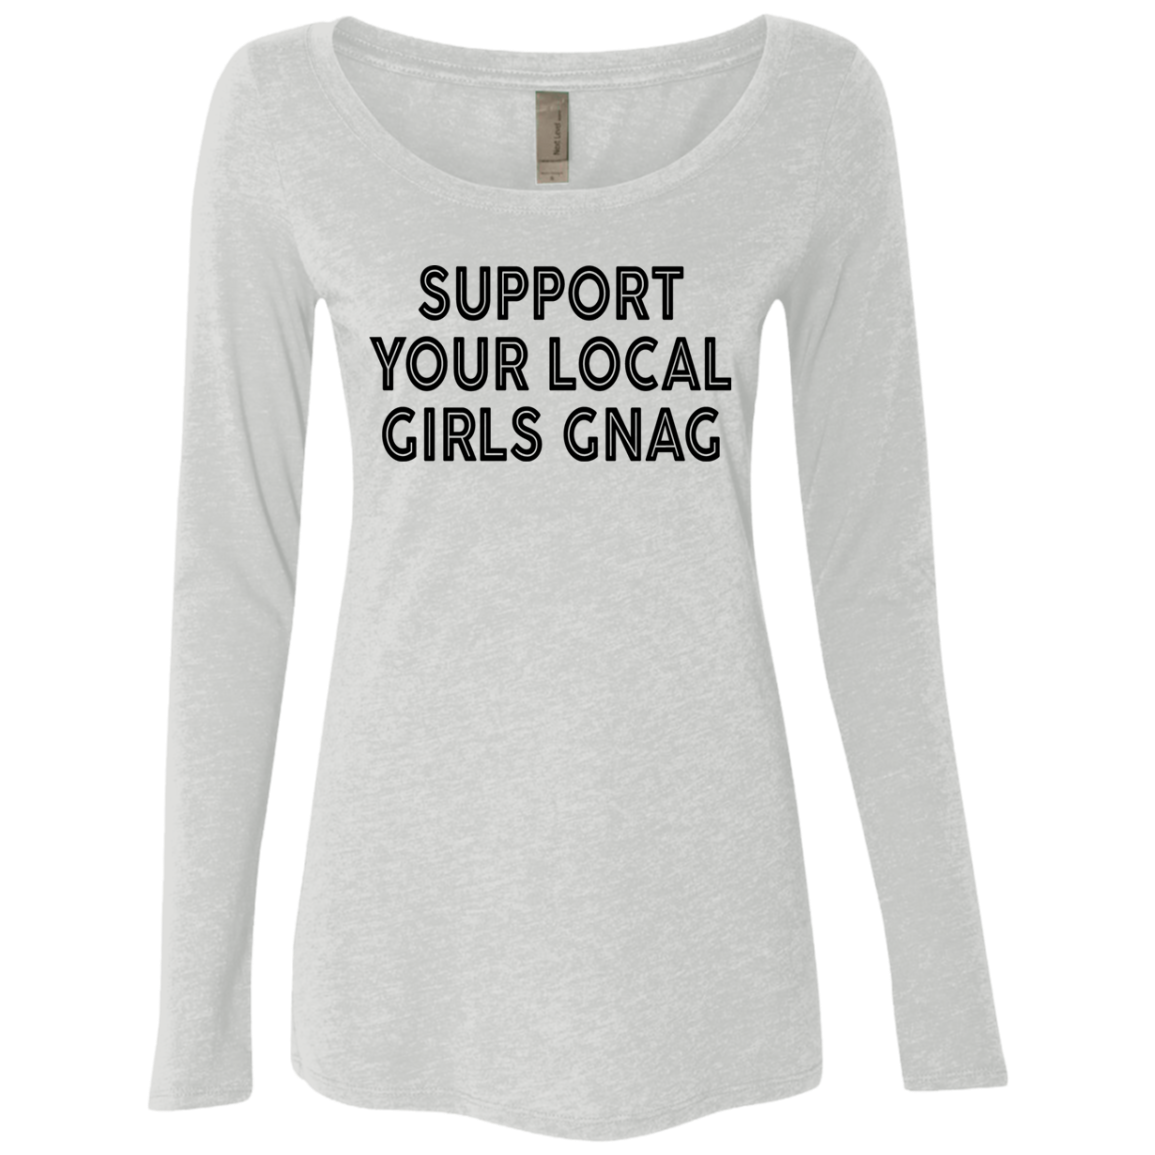 Support Your Local Girls Gnag Women's Long Sleeve Tee